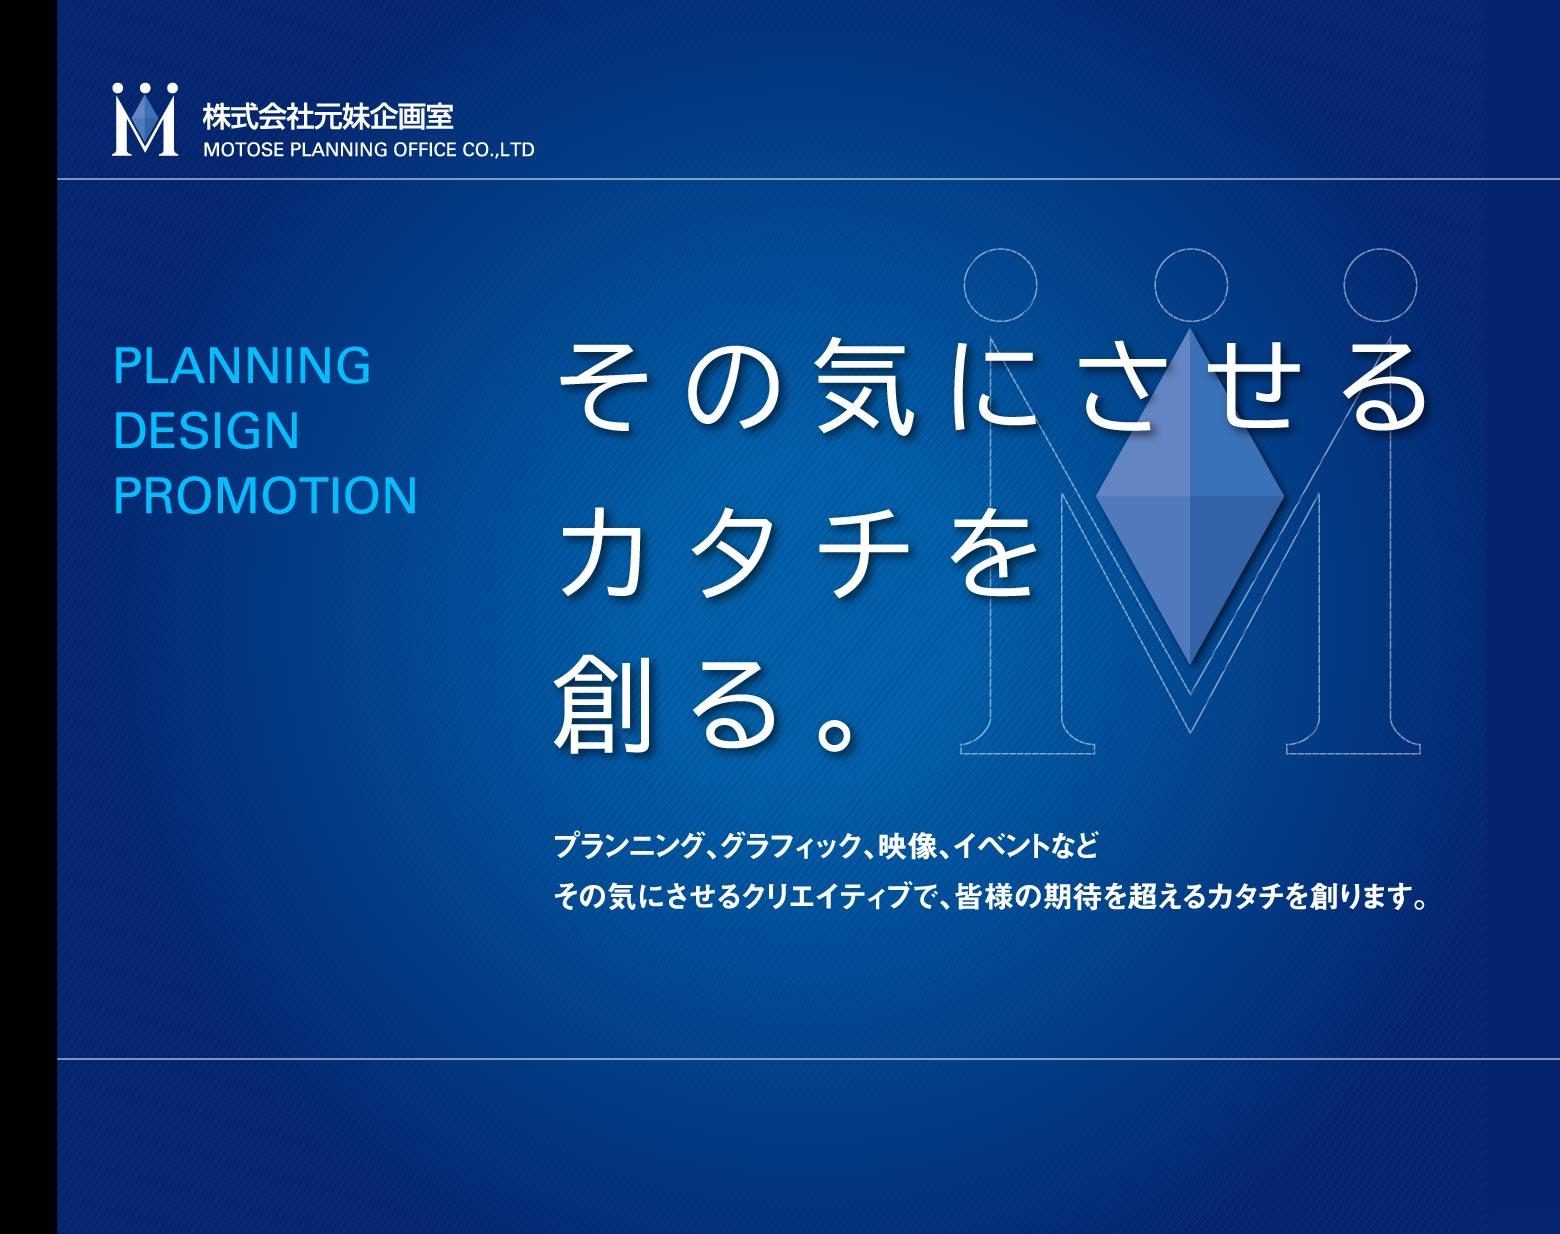 株式会社 元妹企画室 | MOTOSE PLANNING OFFICE CO.,LTD